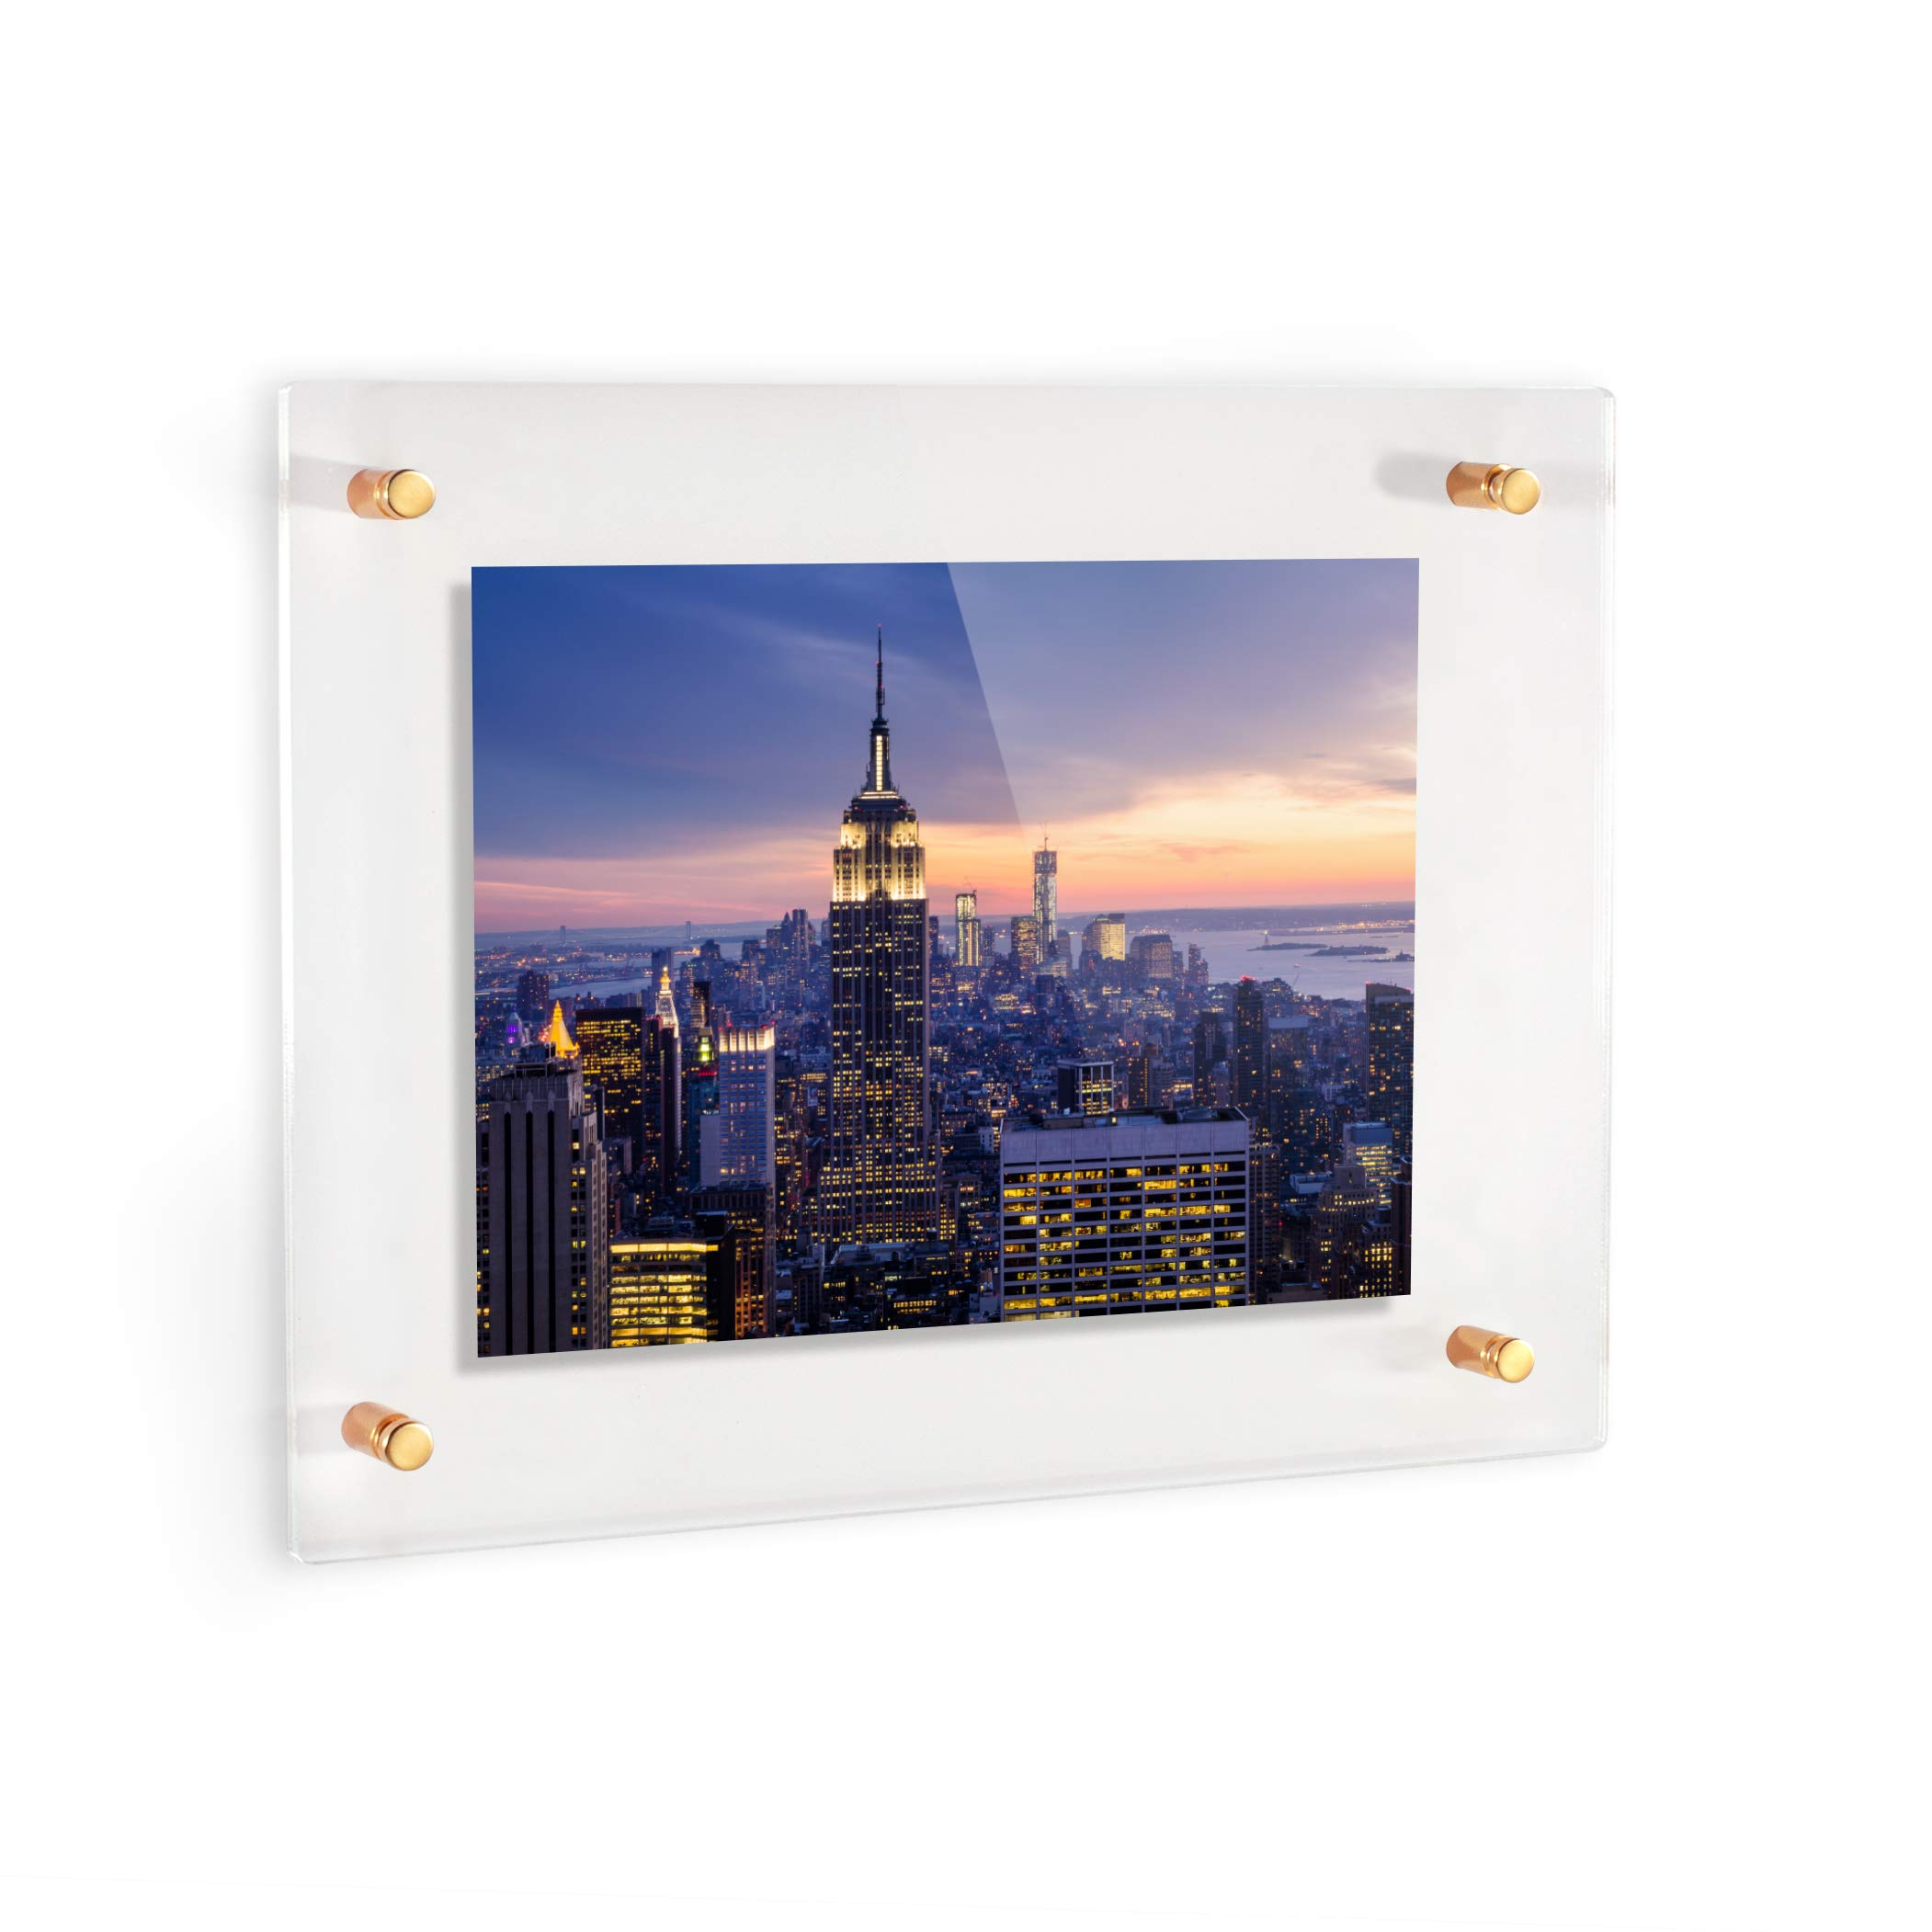 ArtToFrames Floating Acrylic Frame for Pictures Up to 16x20 inches (Full Frame is 20x24) with Gold Standoff Wall Mount Hardware, Acrylic-109-16x20-71 by ArtToFrames (Image #3)